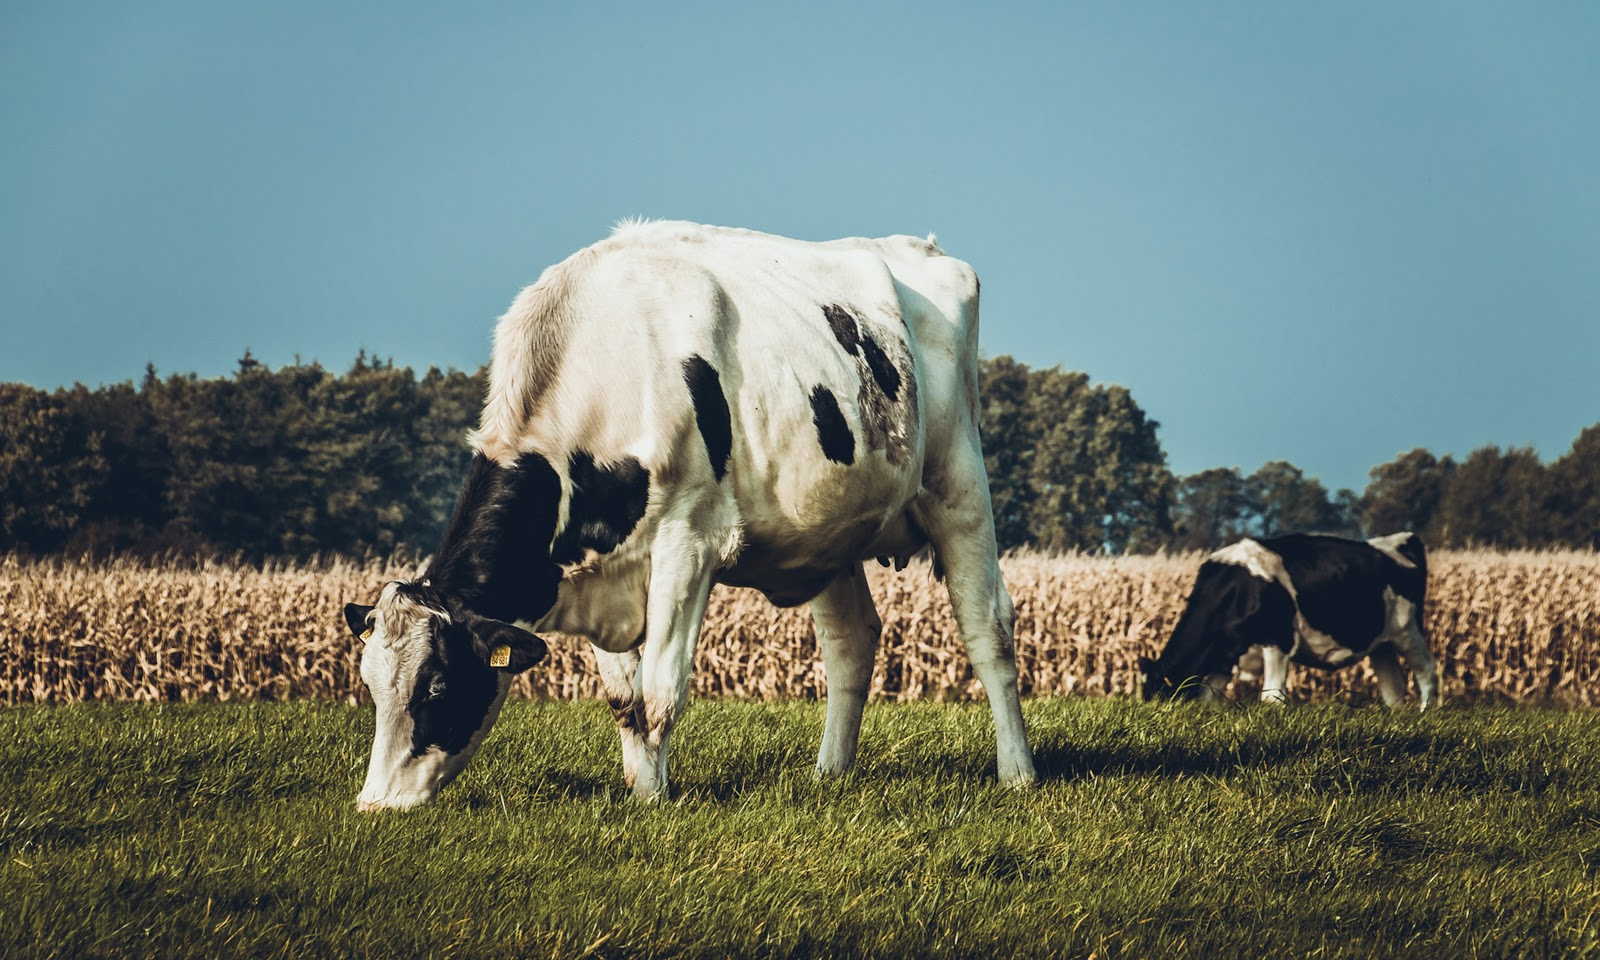 A cow grazing in a pasture.